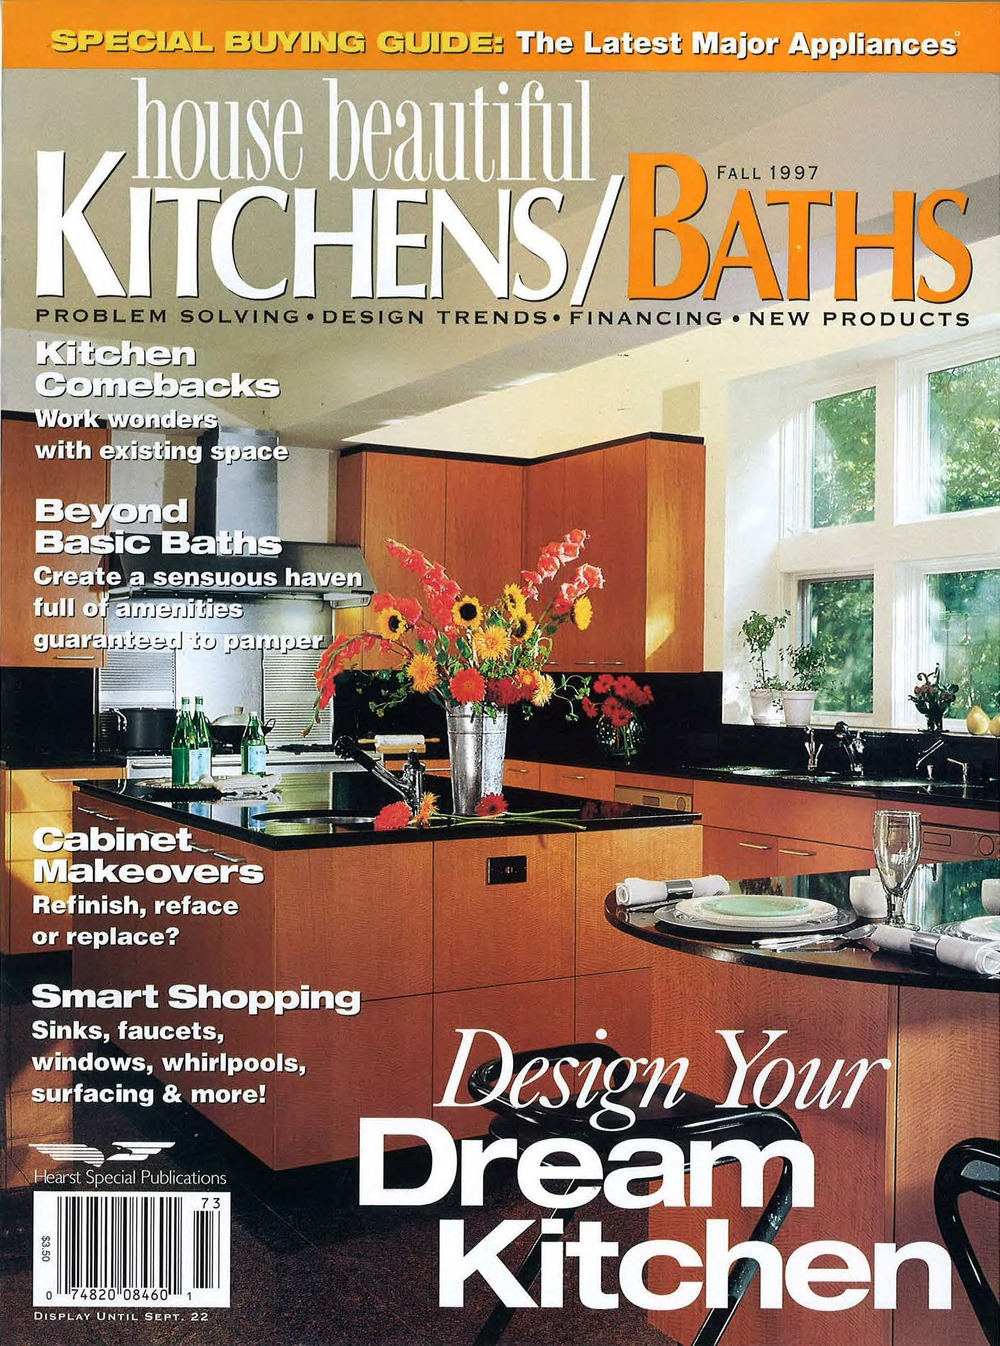 Pages from 1997 House Beautiful Kitchens & Baths 1.jpg